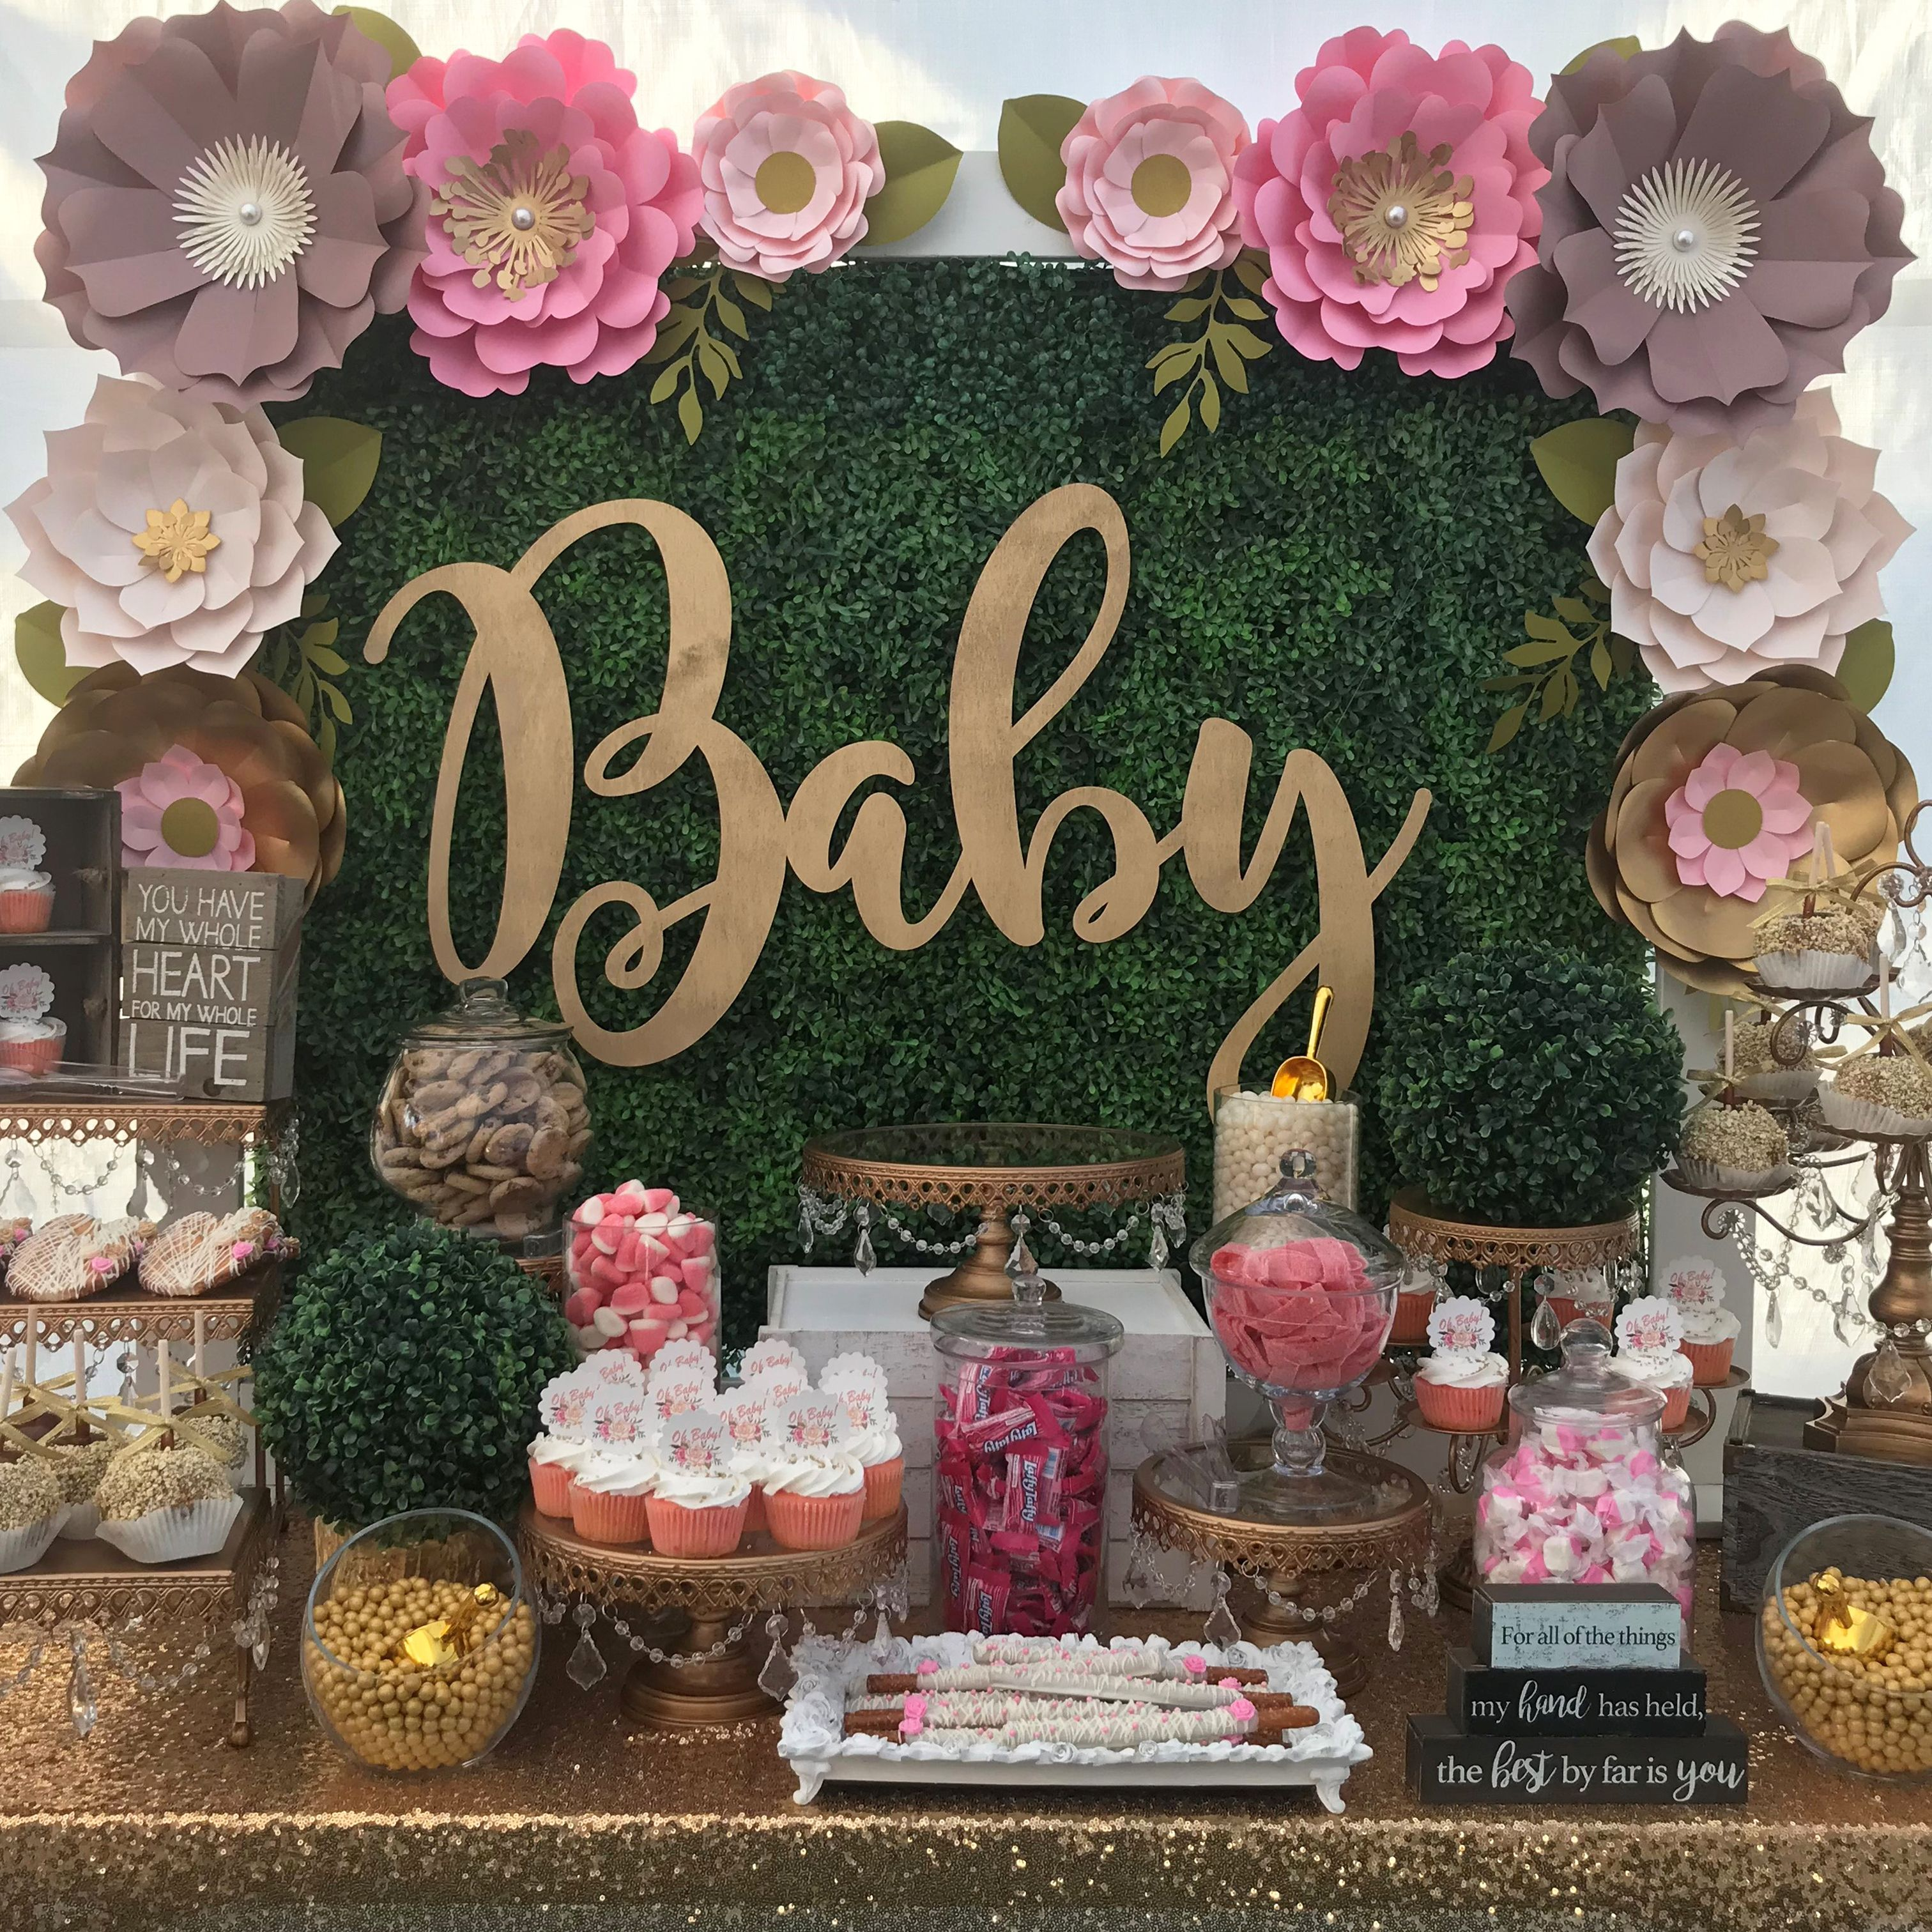 Oh Baby Loving The Paper Flower Backdrop Created By Petals N More For This Baby Shower Dessert Baby Shower Candy Table Baby Shower Dessert Table Dessert Table